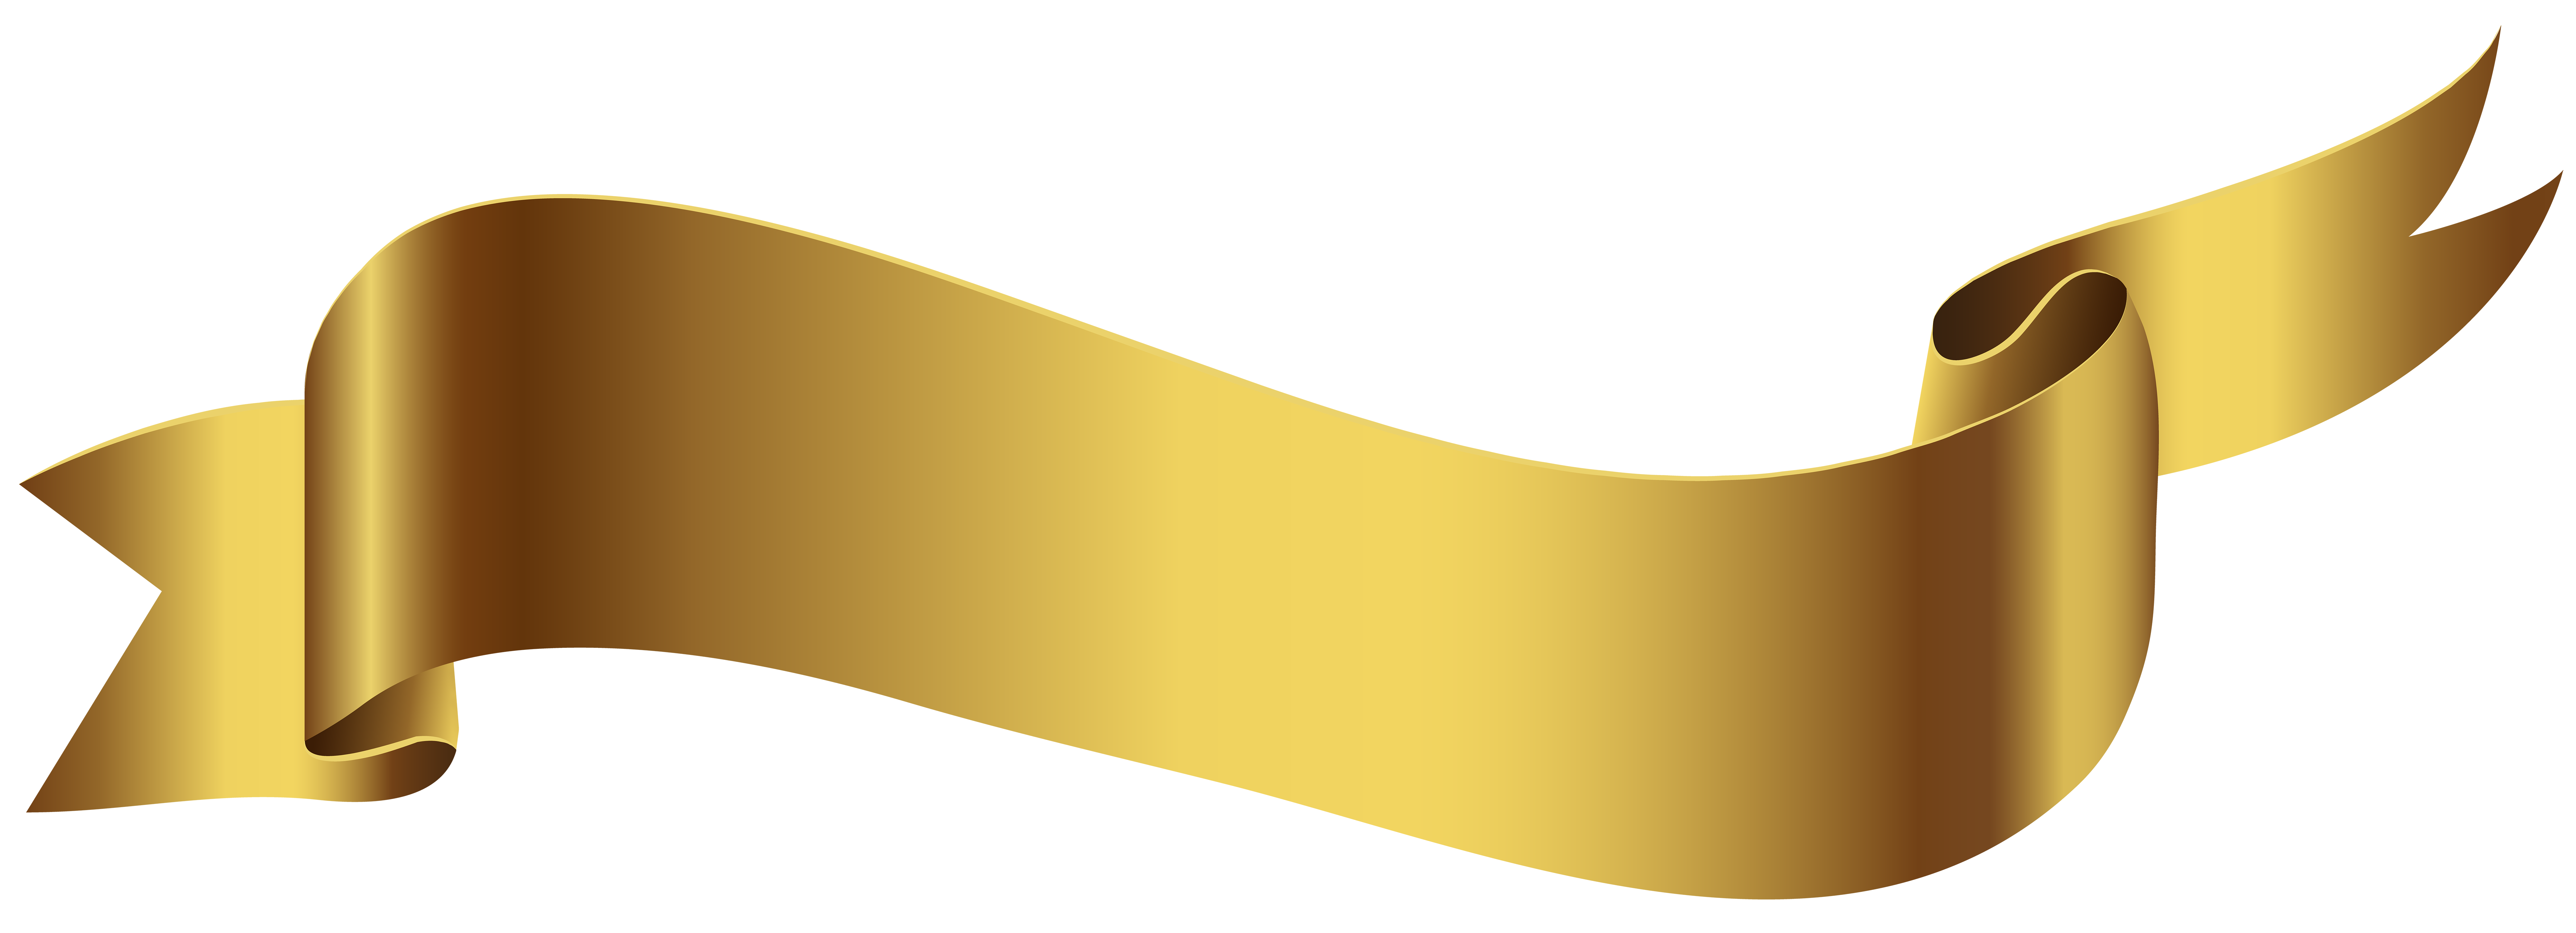 Banner png transparent. Gold image gallery yopriceville